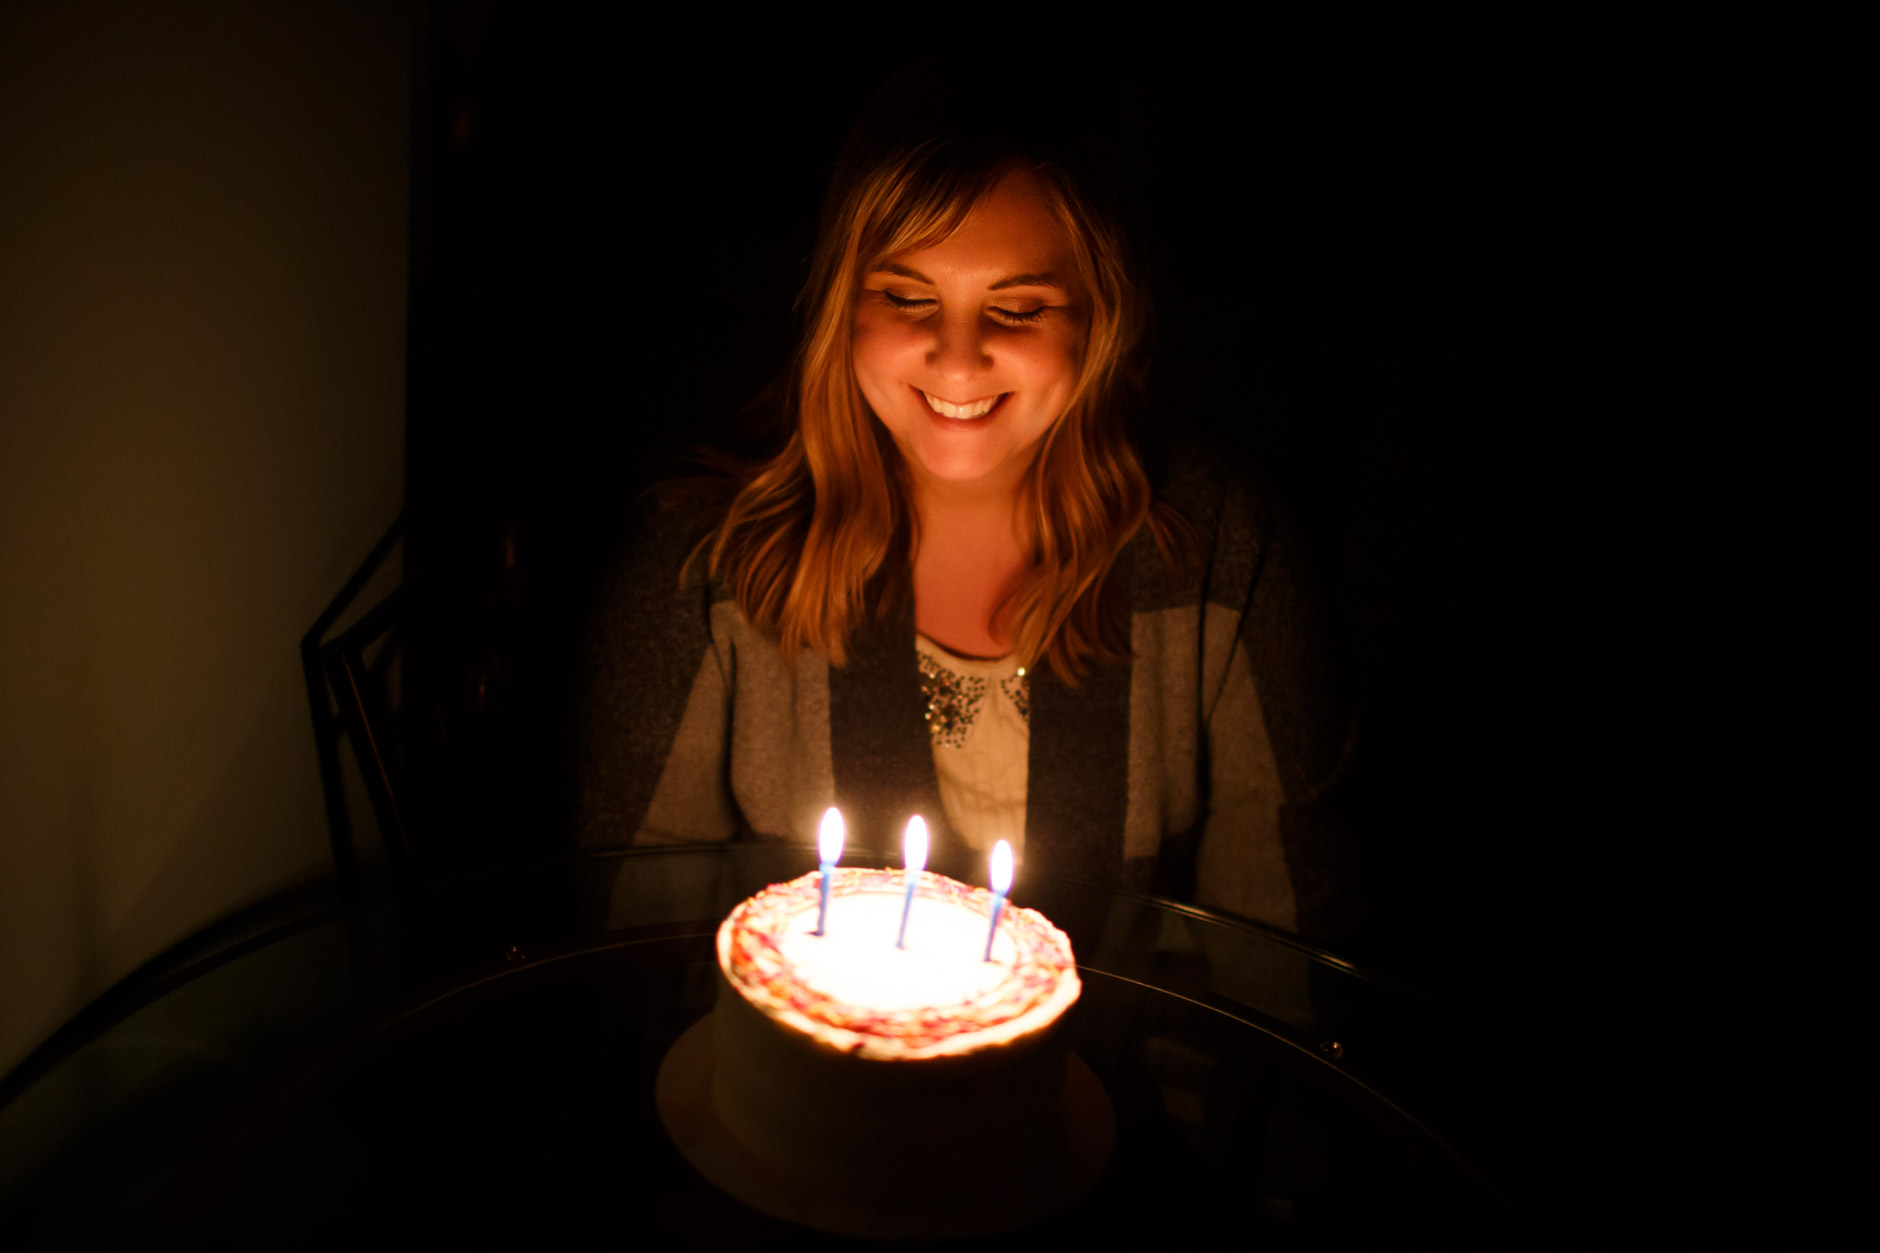 Barbara Brosher is pictured with her birthday cake at an Airbnb rental in Indianapolis, Indiana on Thursday, Jan. 24, 2019. (Photo by James Brosher)